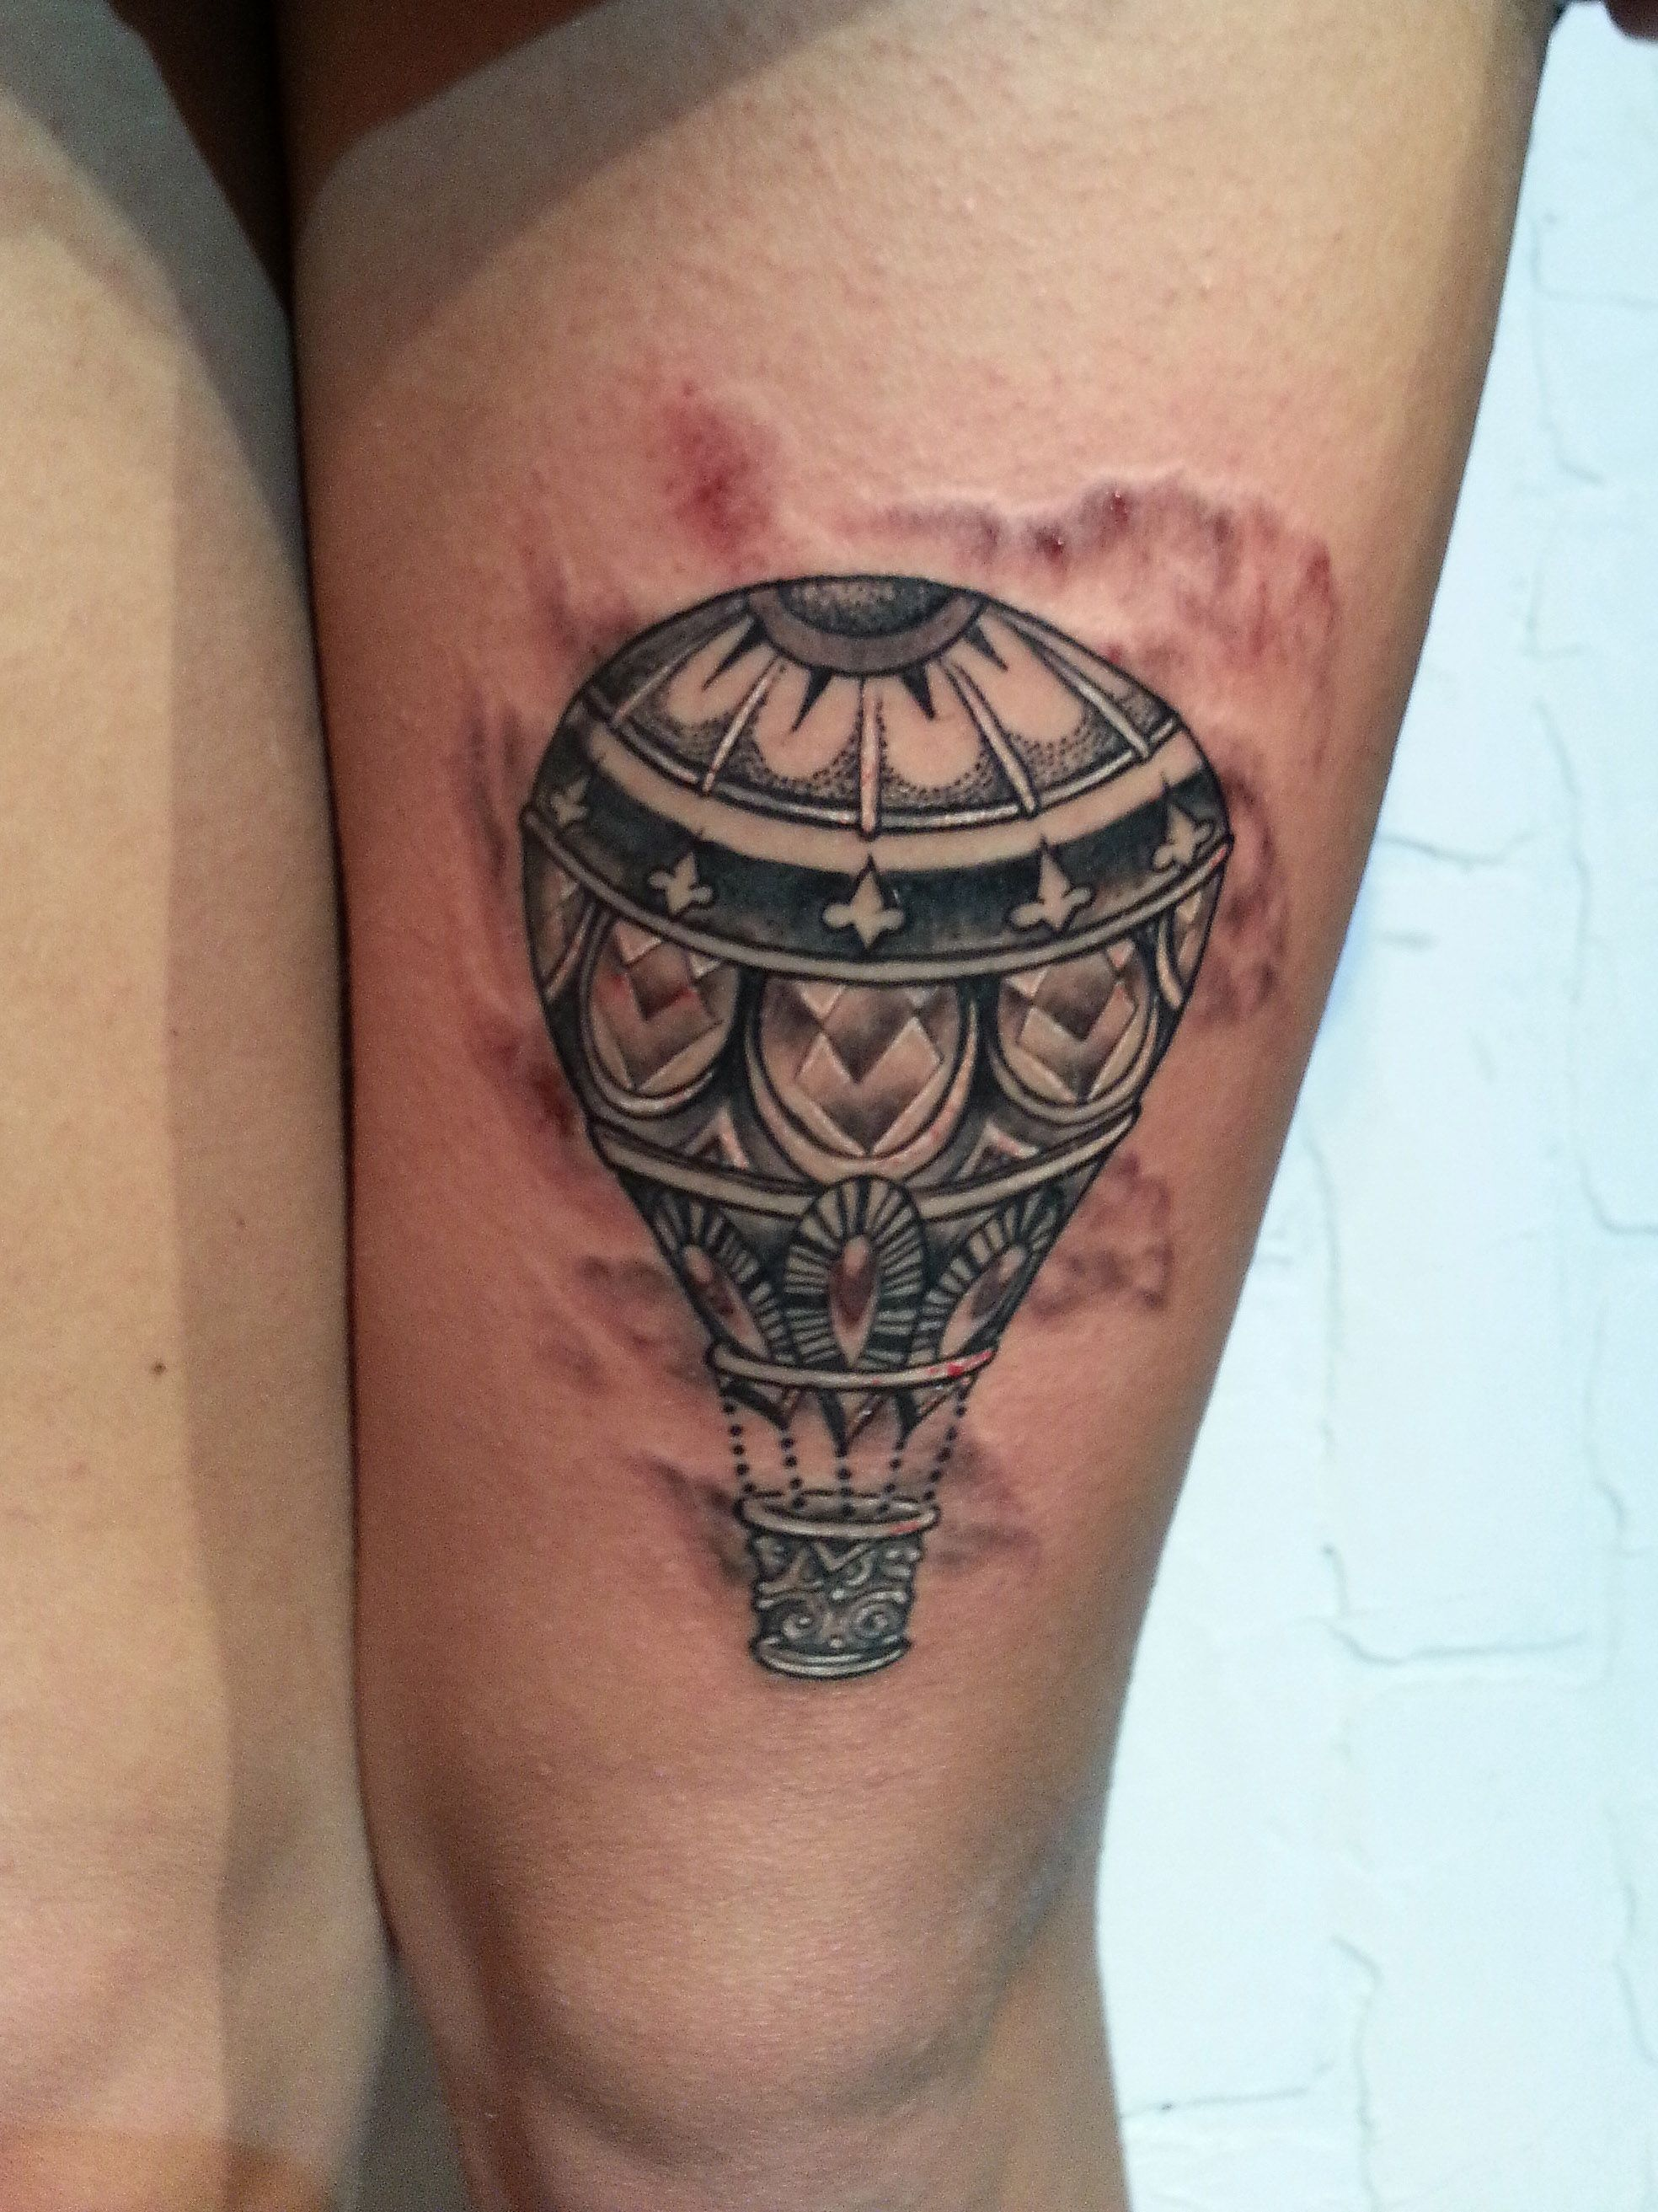 Old Hot Air Balloon Tattoo - Stylendesigns.com! | Tattoo Designs ...